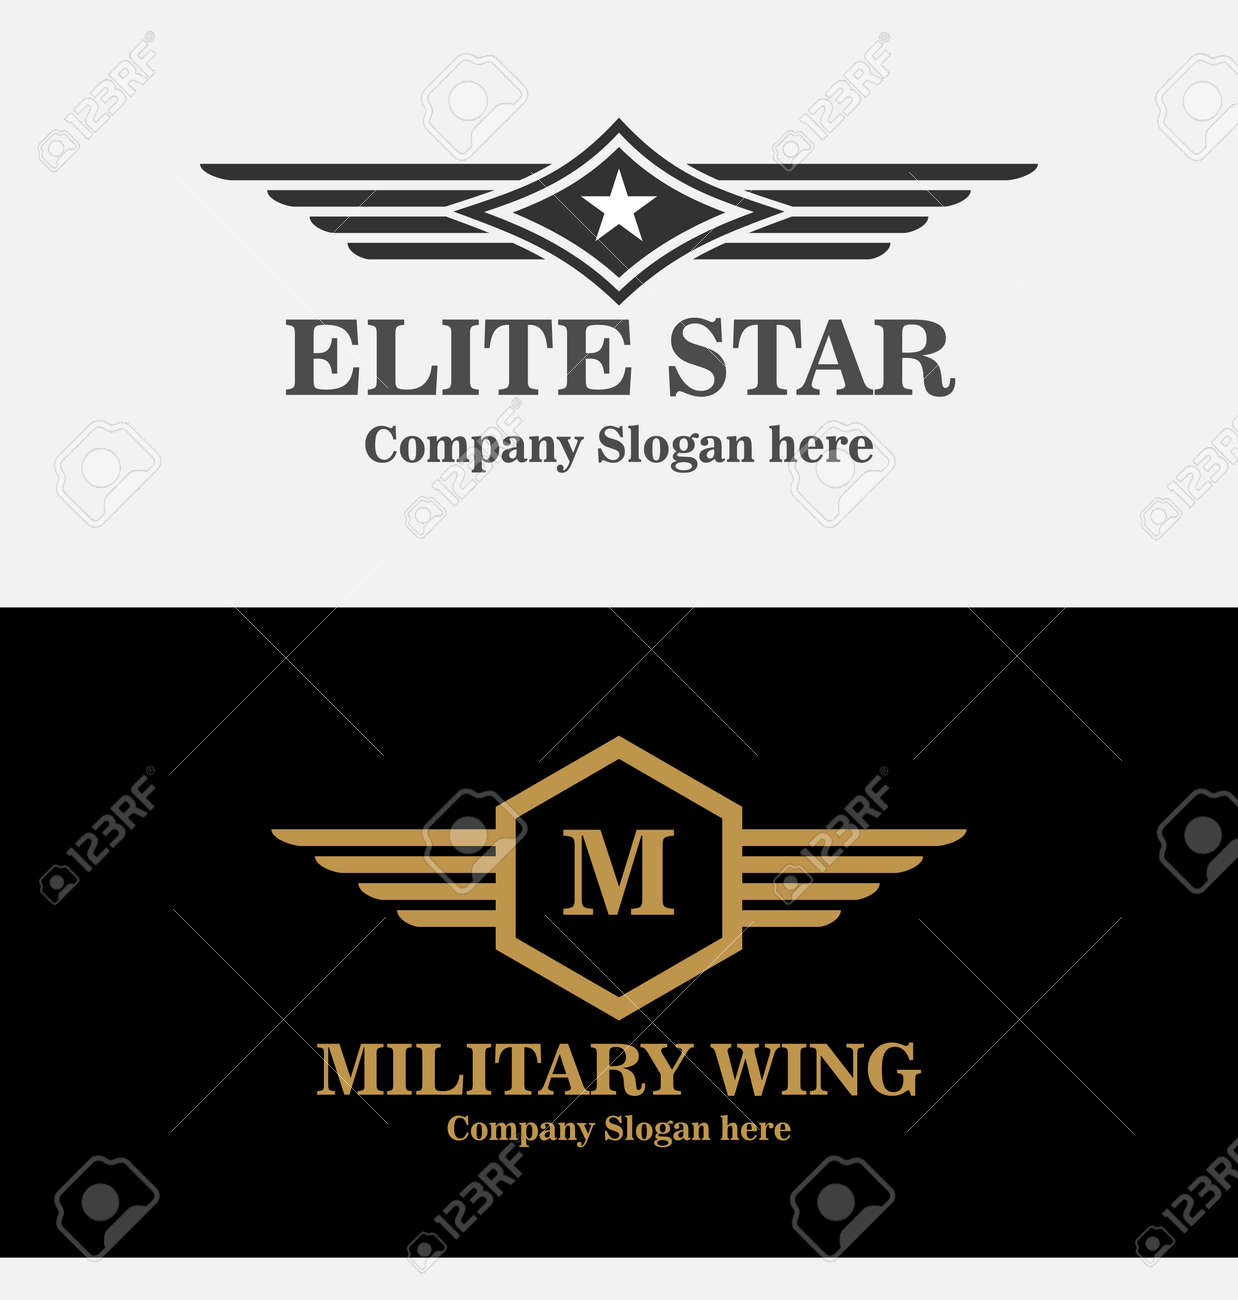 Army and military badges and strength icon symbols